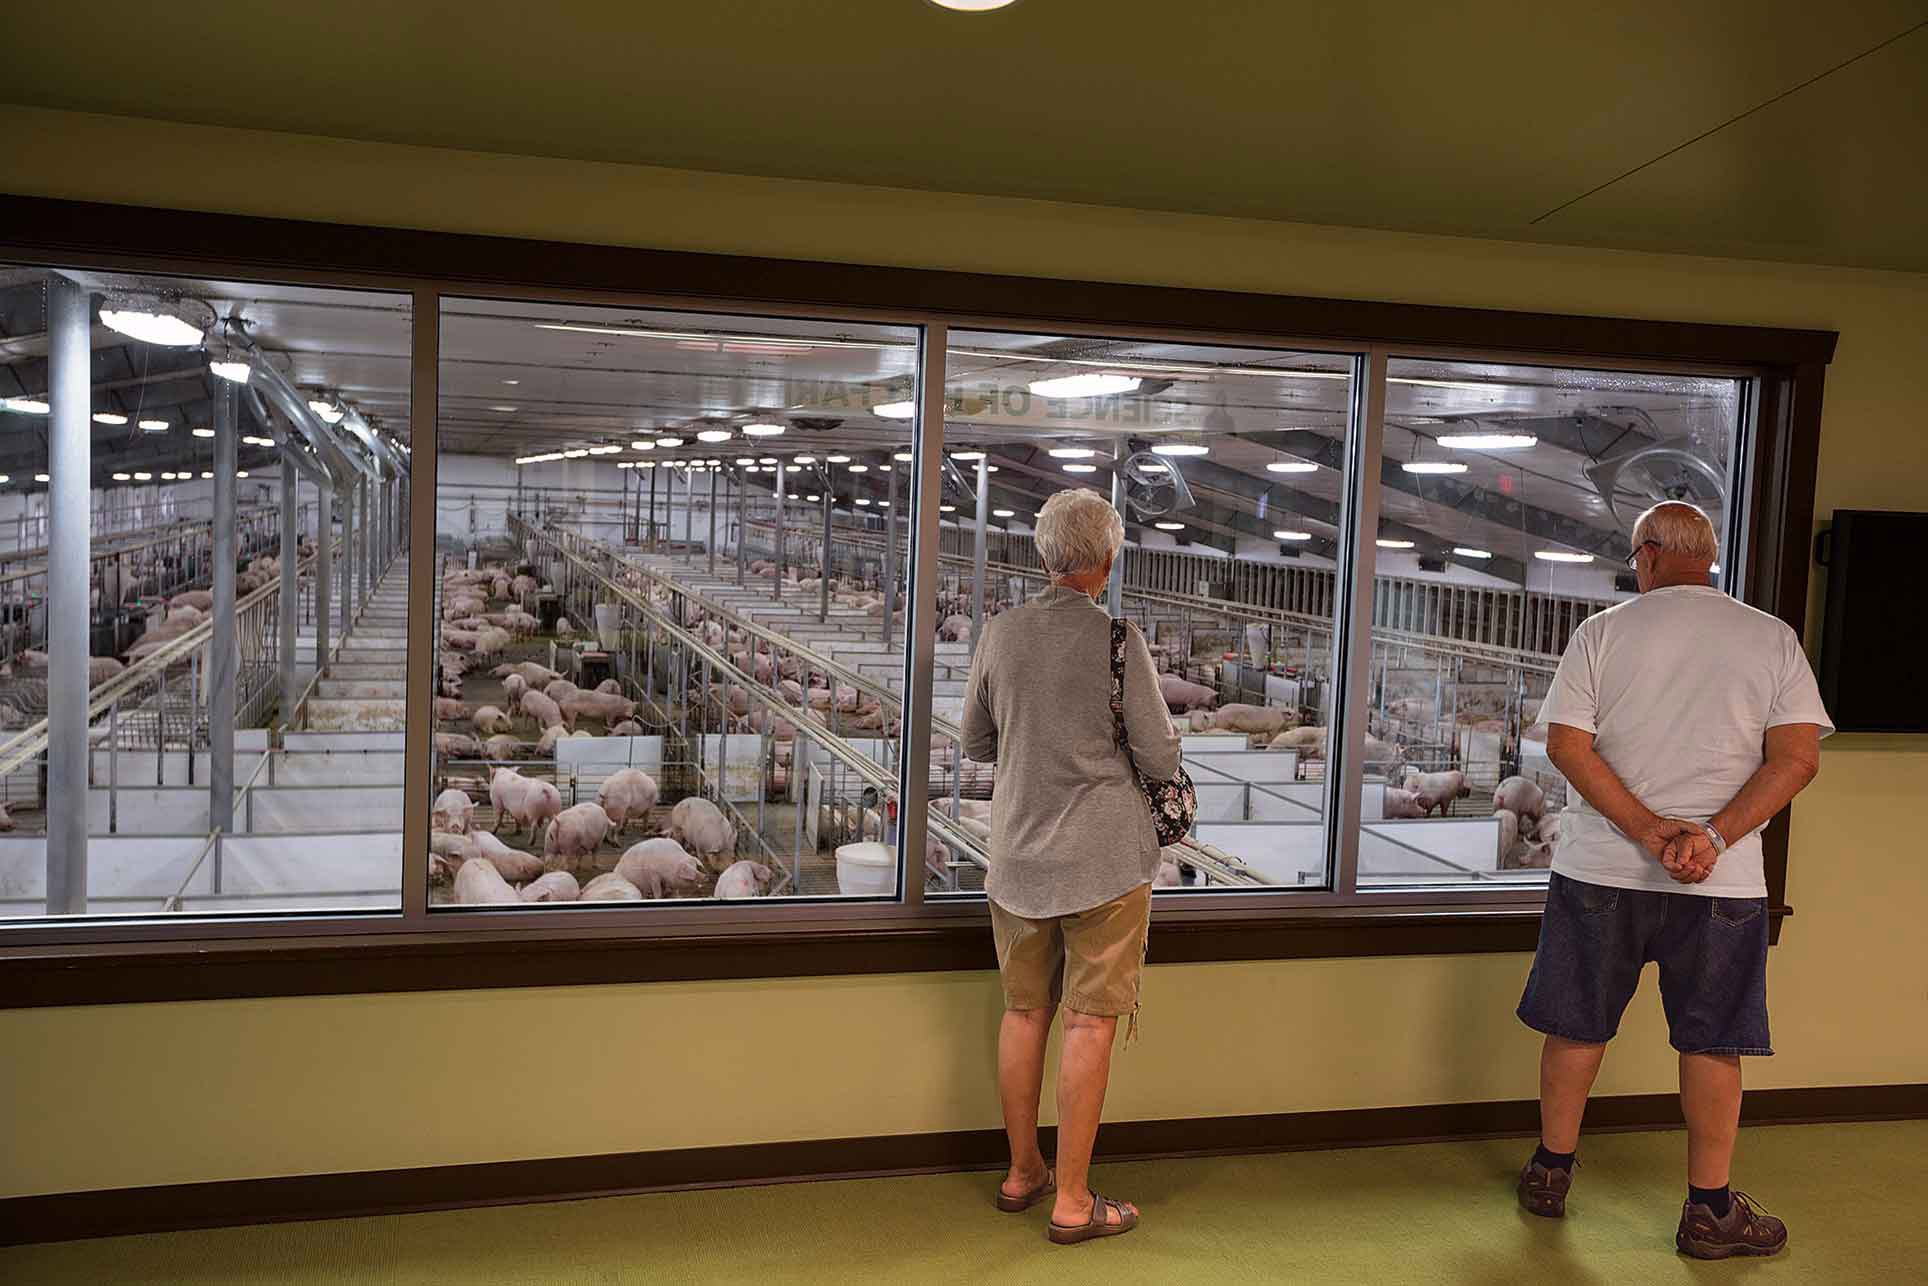 Getting A Skybox View Visitors To The Pig Adventure Take Advantage Of 25000 Square Feet